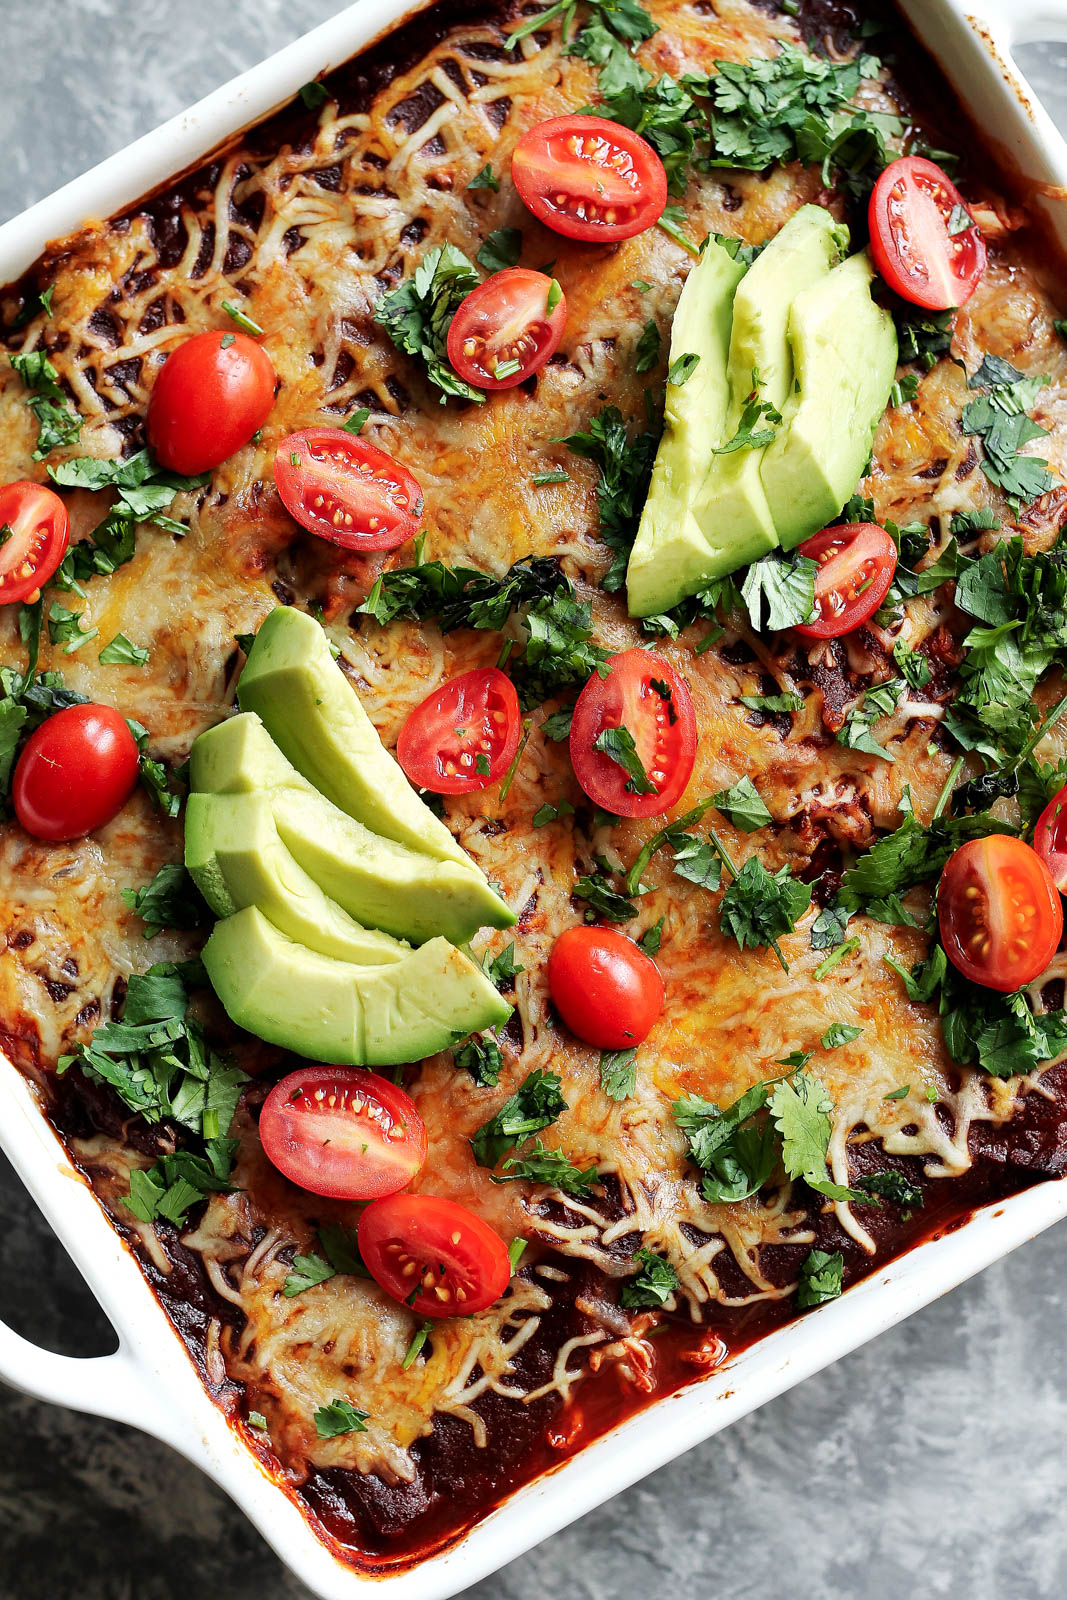 Low Carb Chicken Zucchini Enchilada Bake from ambitiouskitchen.com on foodiecrush.com